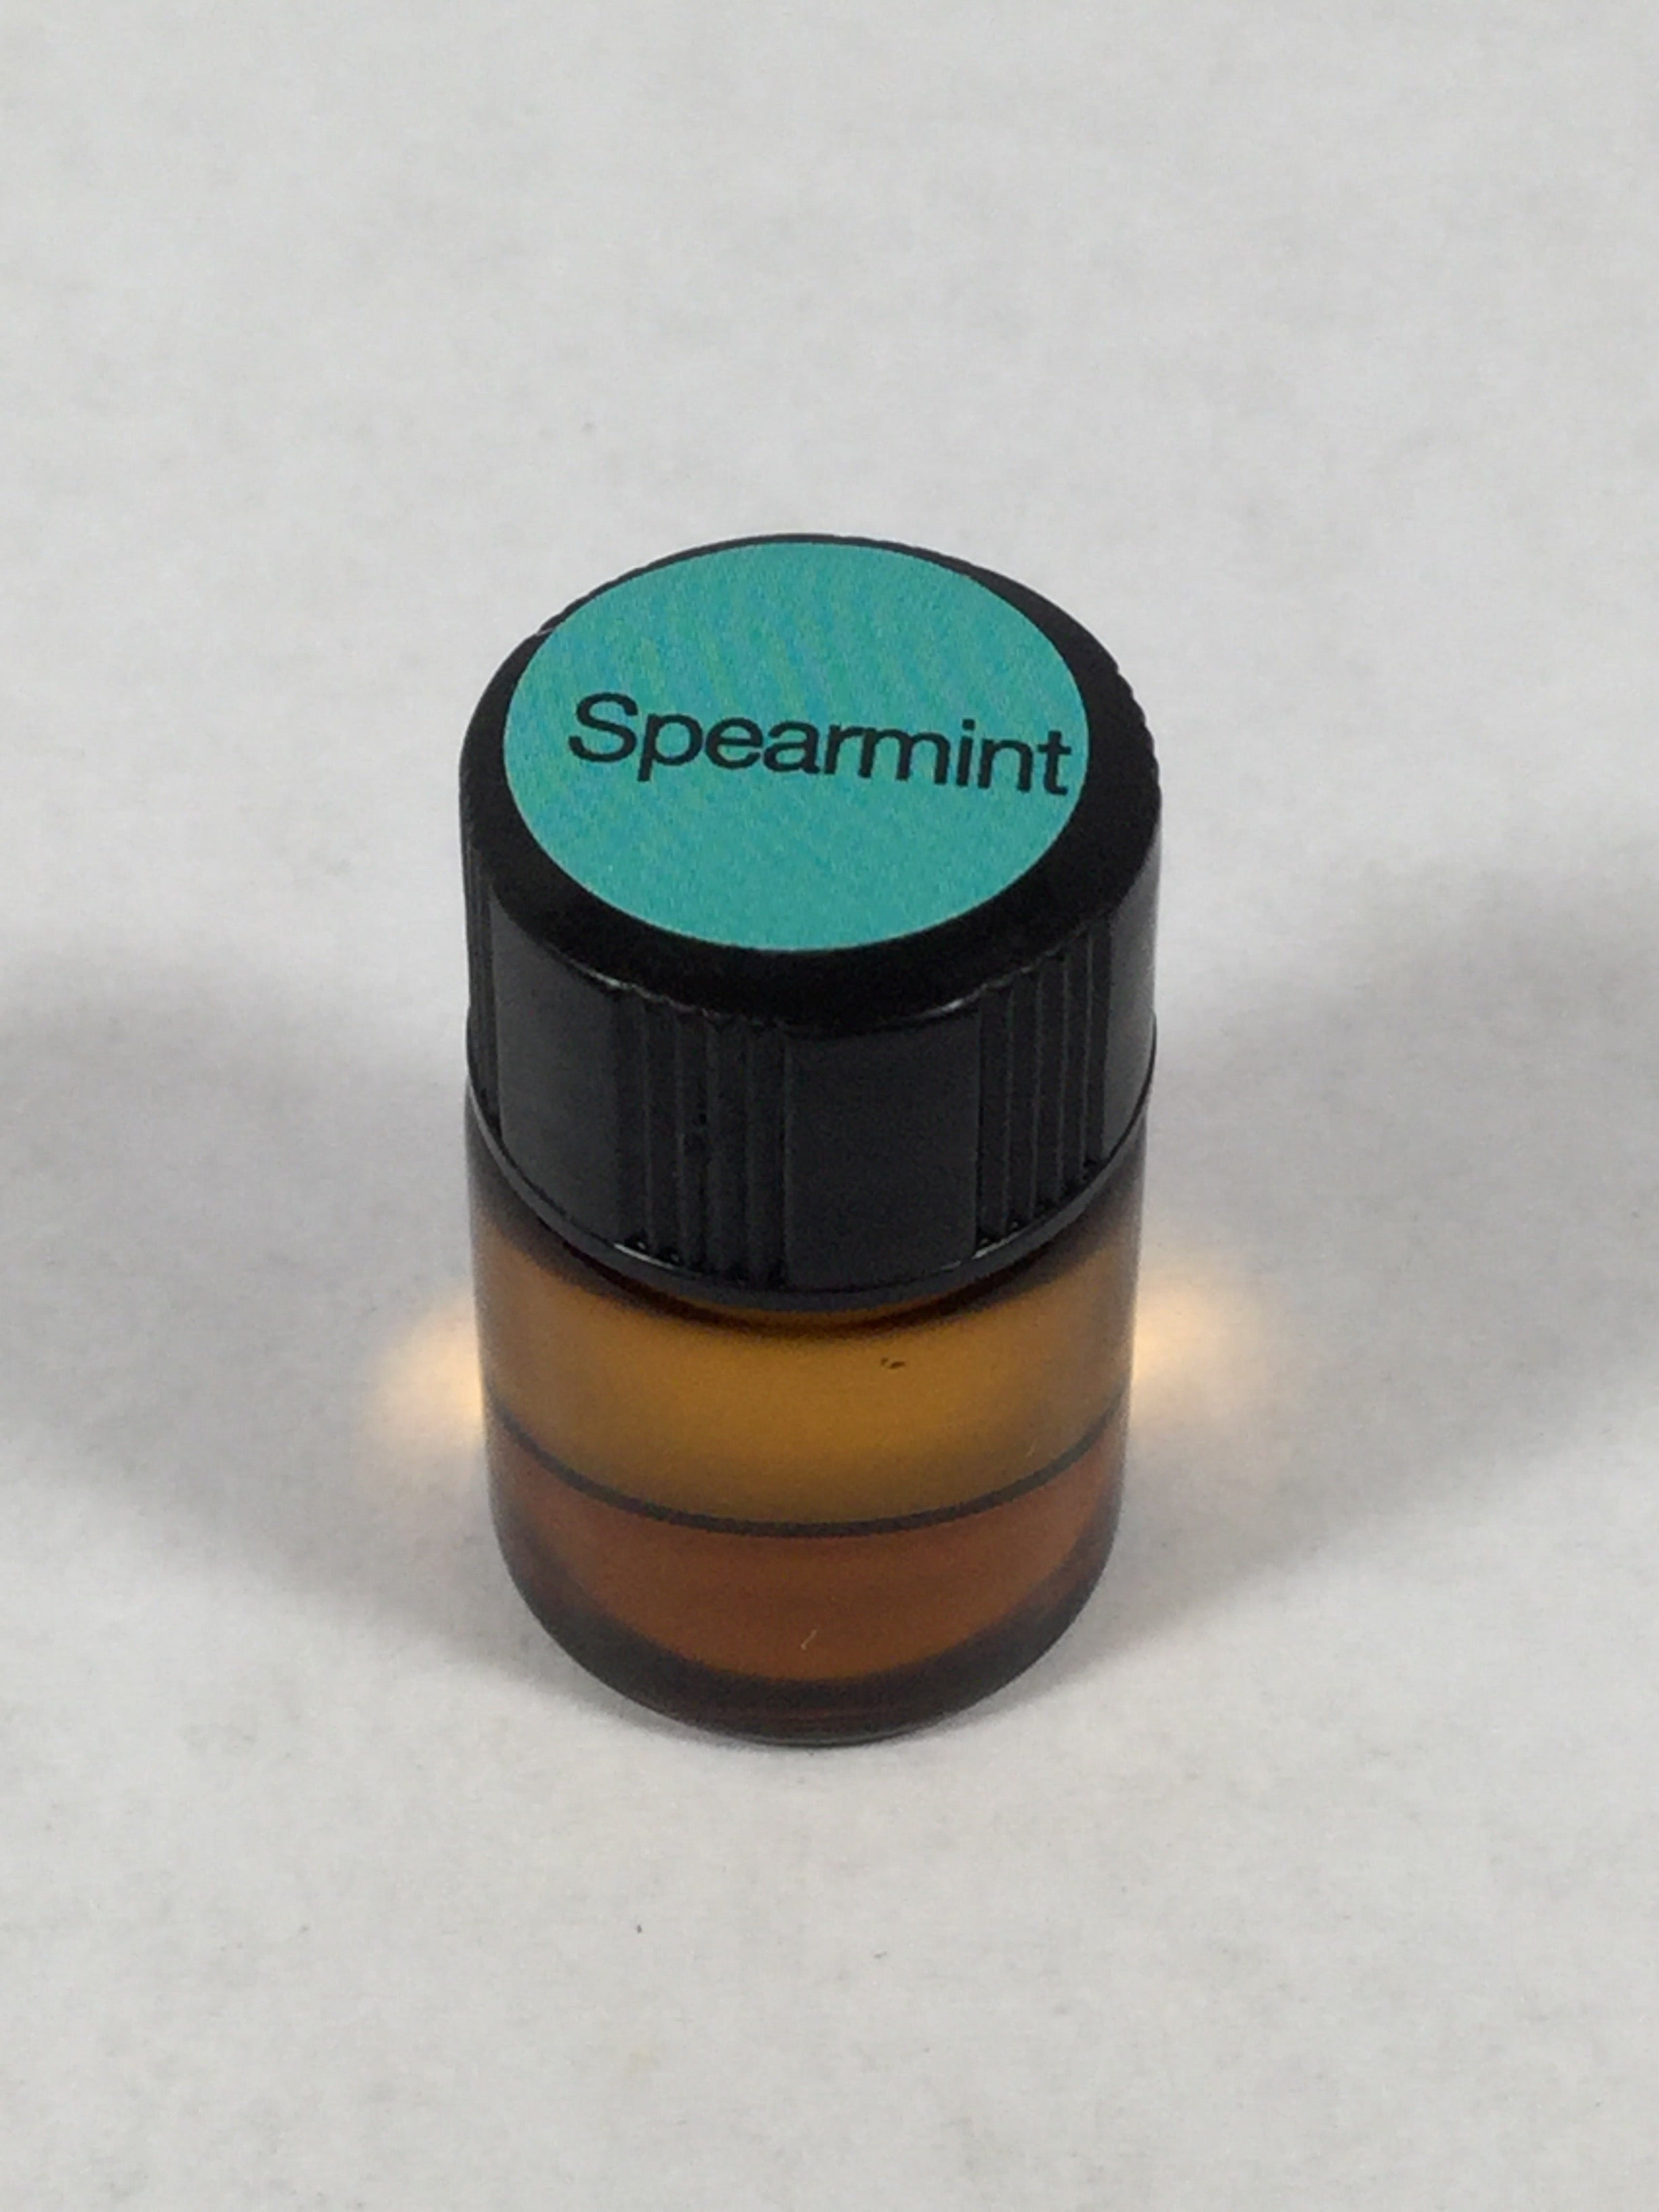 Oil: 2ml Spearmint dōTerra Essential Oil